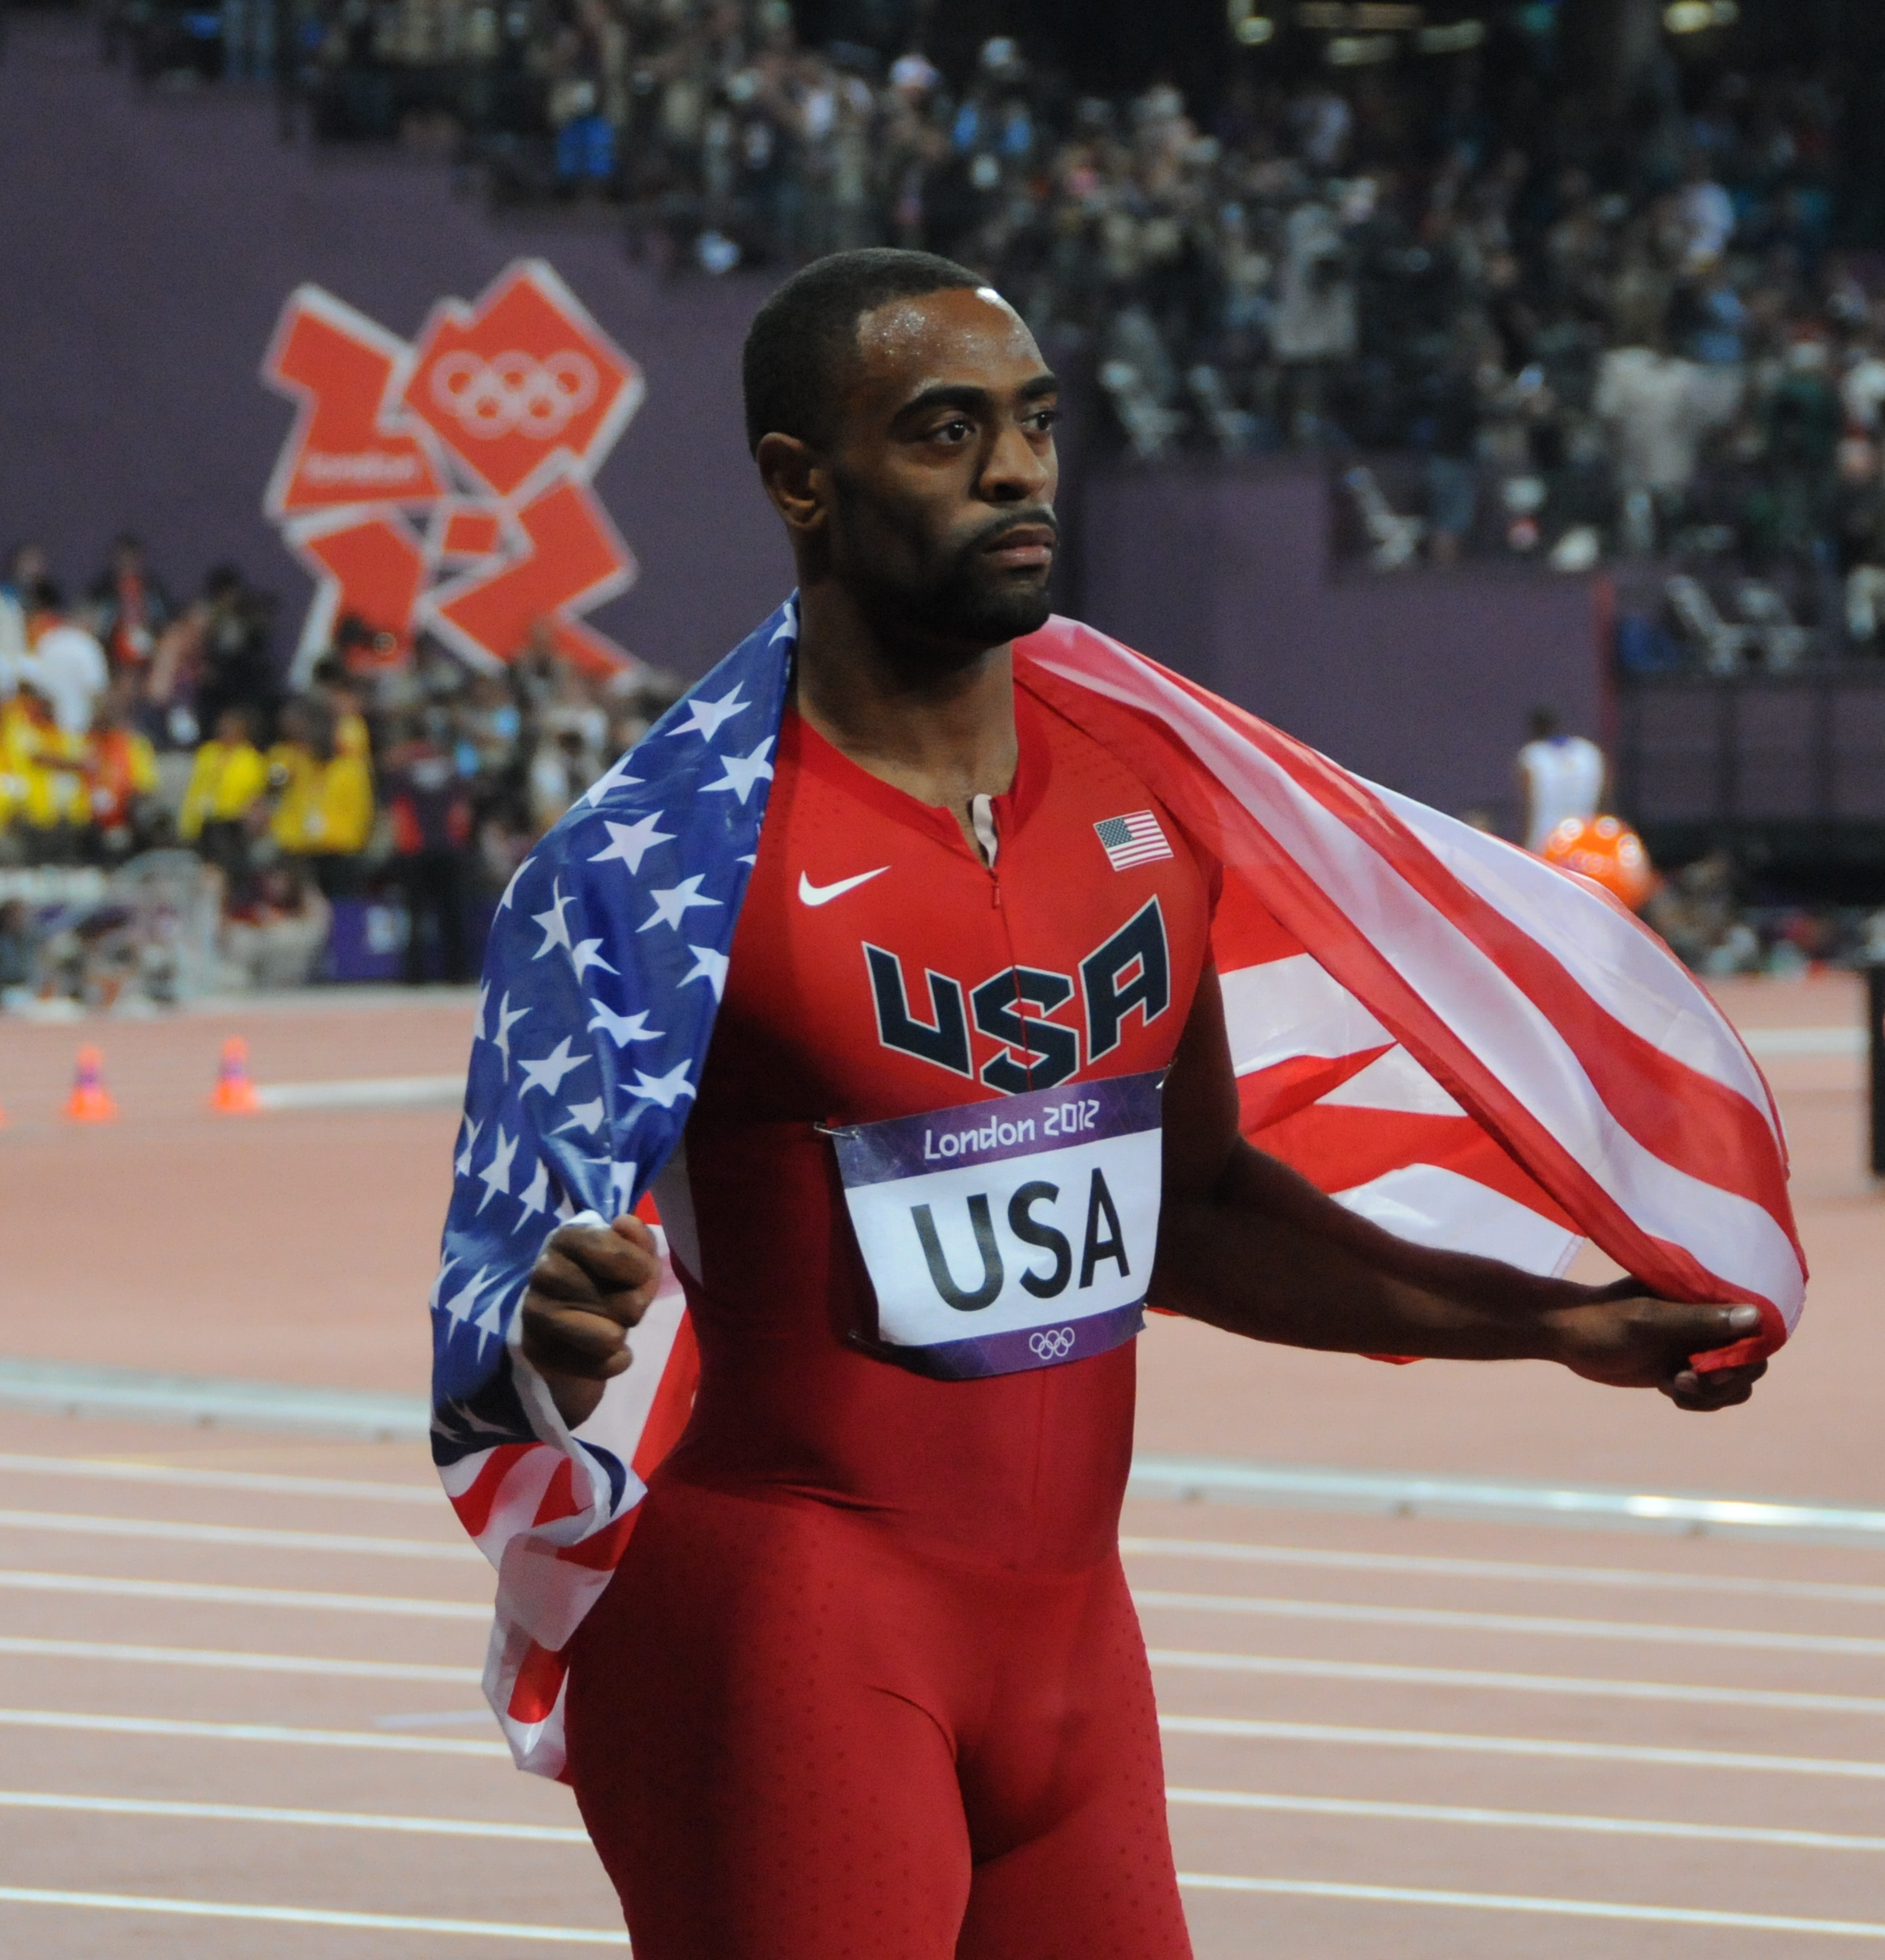 Tyson Gay achievements